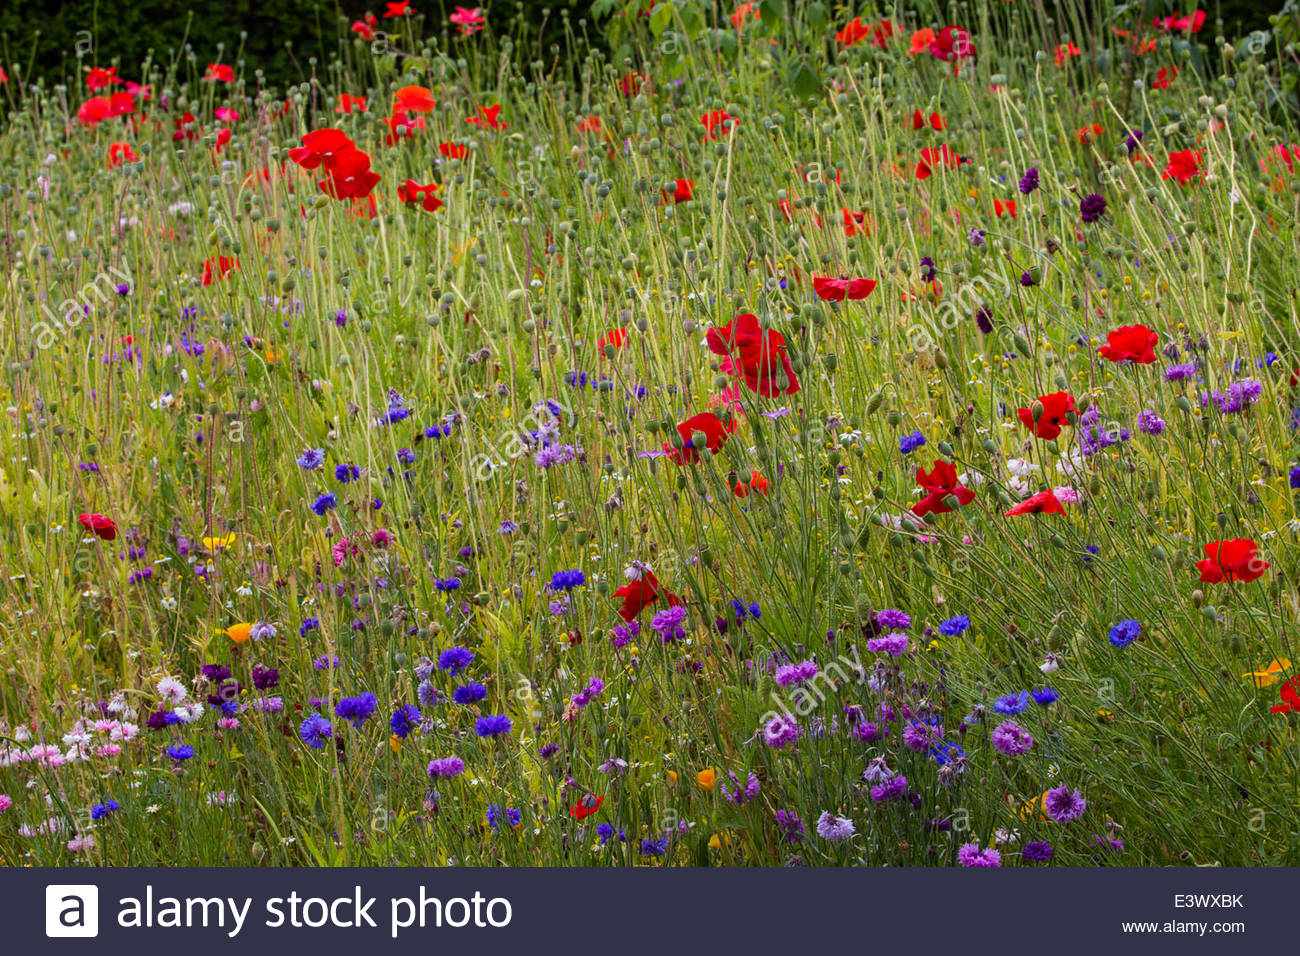 A bee friendly wildflower meadow at RHS Wisley with poppies, cornflowers, grasses and other summer flowering species. - Stock Image